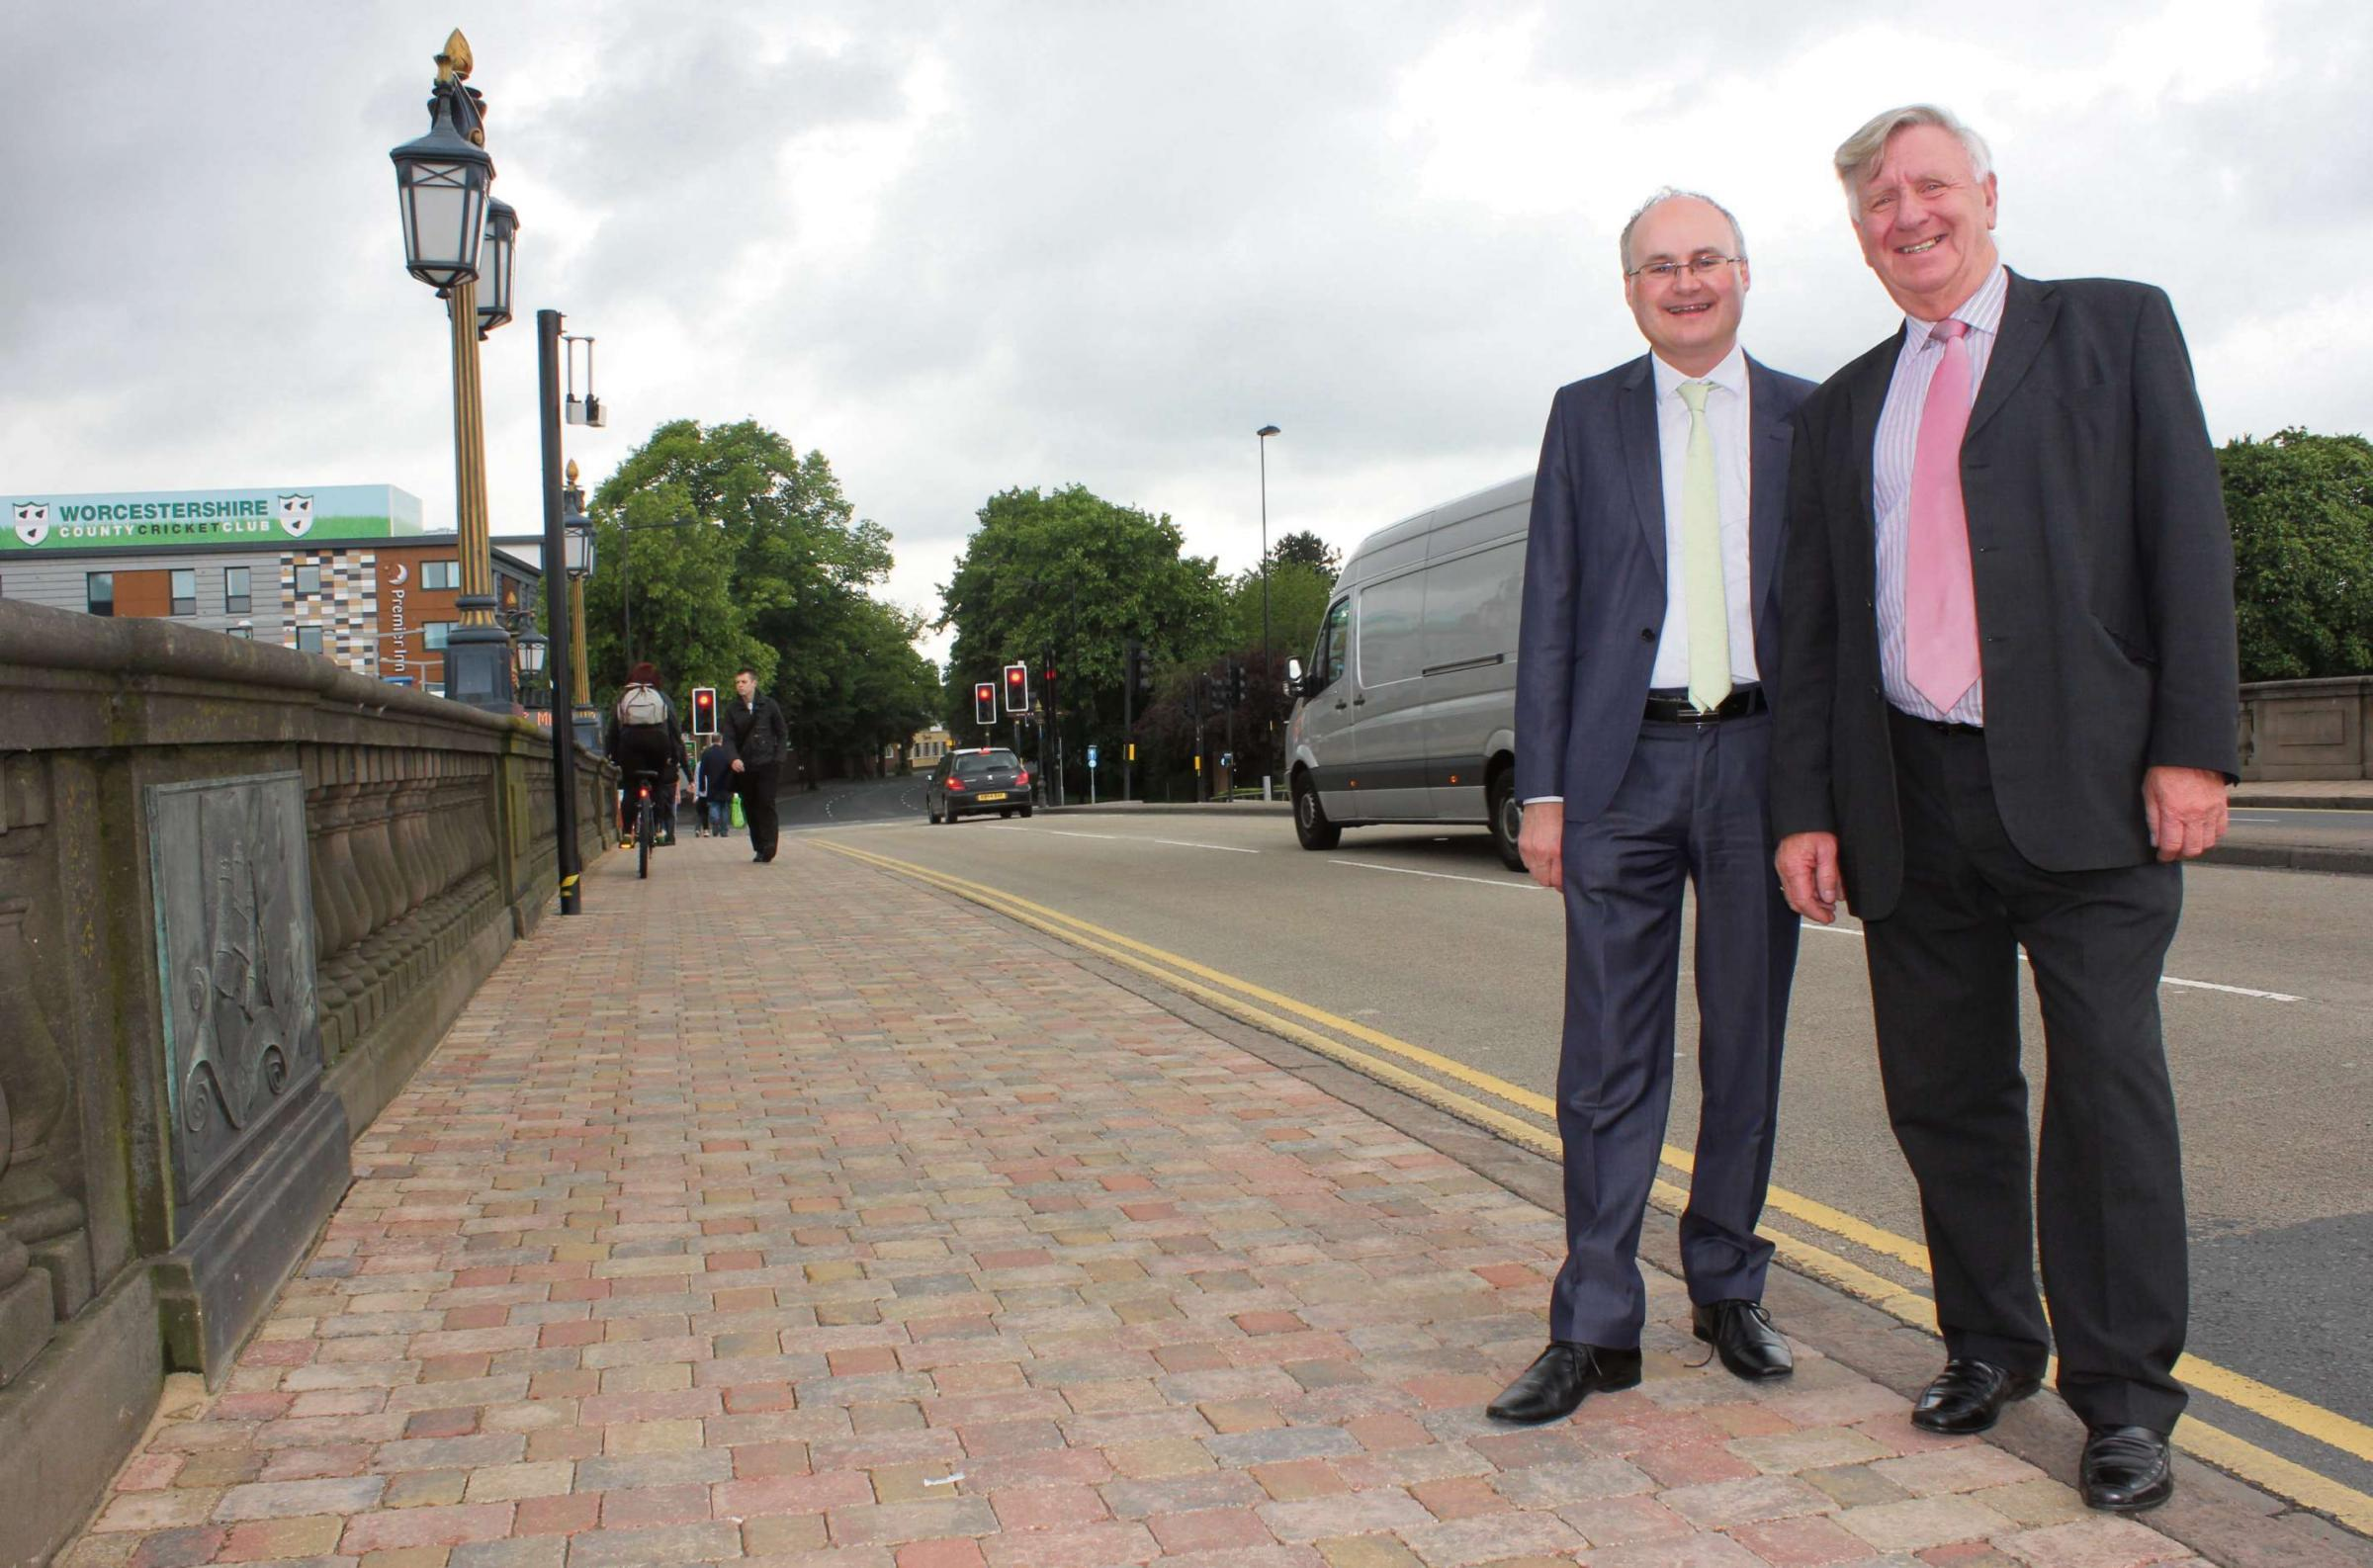 Cllr Simon Geraghty, county councillor for the Worcester Riverside division, and cllr John Smith, cabinet member for Highways, on the improved Worcester Bridge where work on an improvement project was completed ahead of schedule overnight May 29/30.